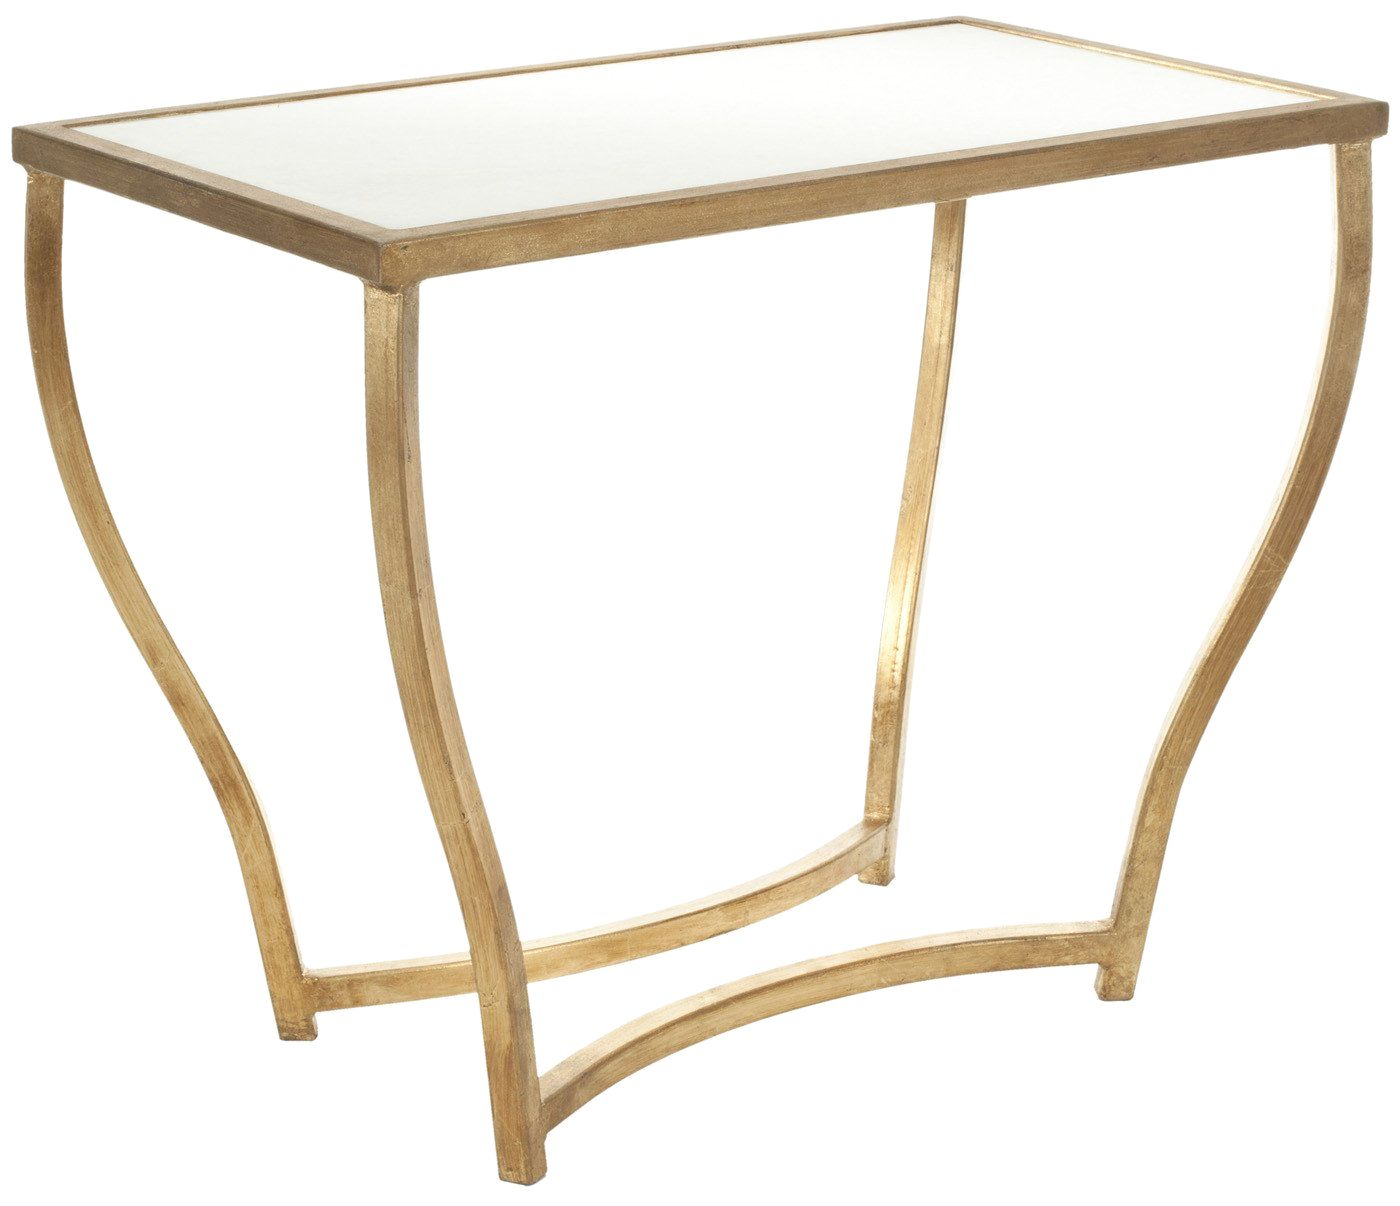 Picture of: Buy Safavieh Fox2505a Rex Accent Table White Gold Legs At Contemporary Furniture Warehouse